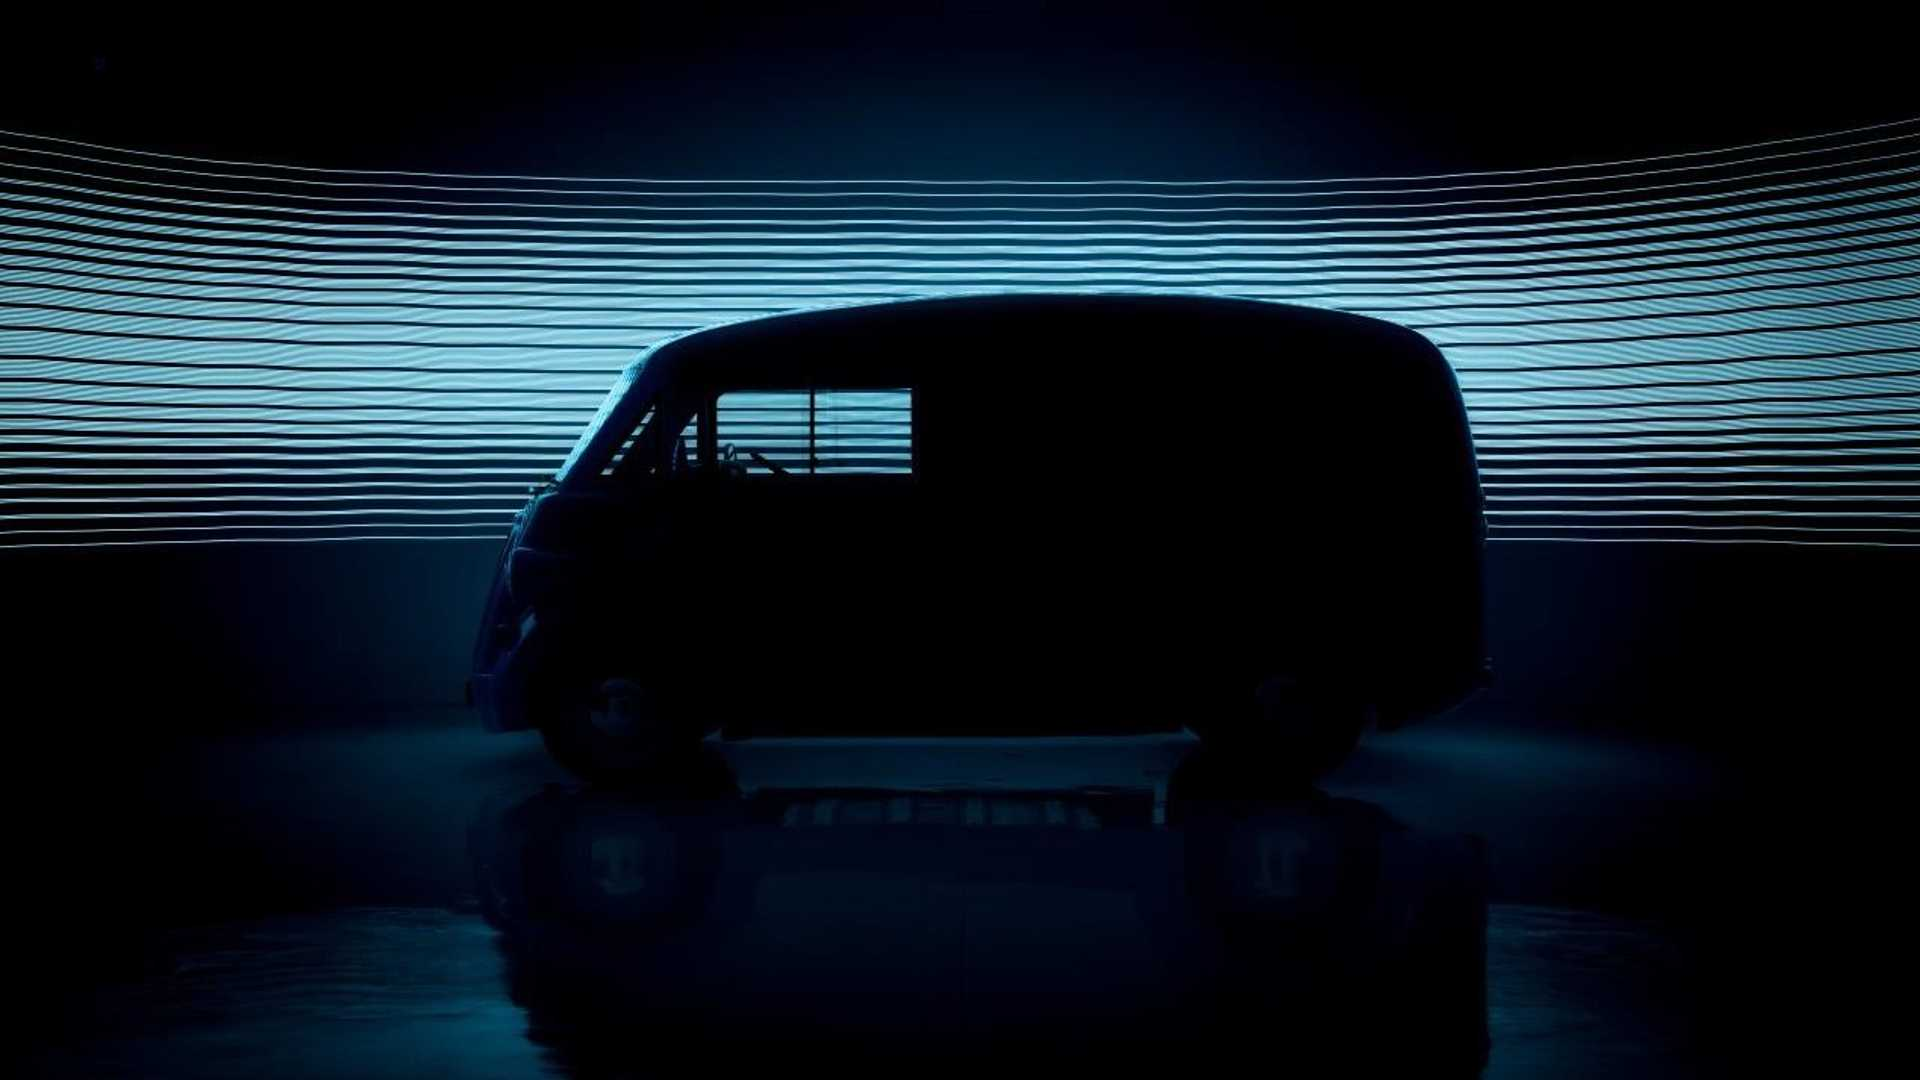 Morris is back with an all-new electric van